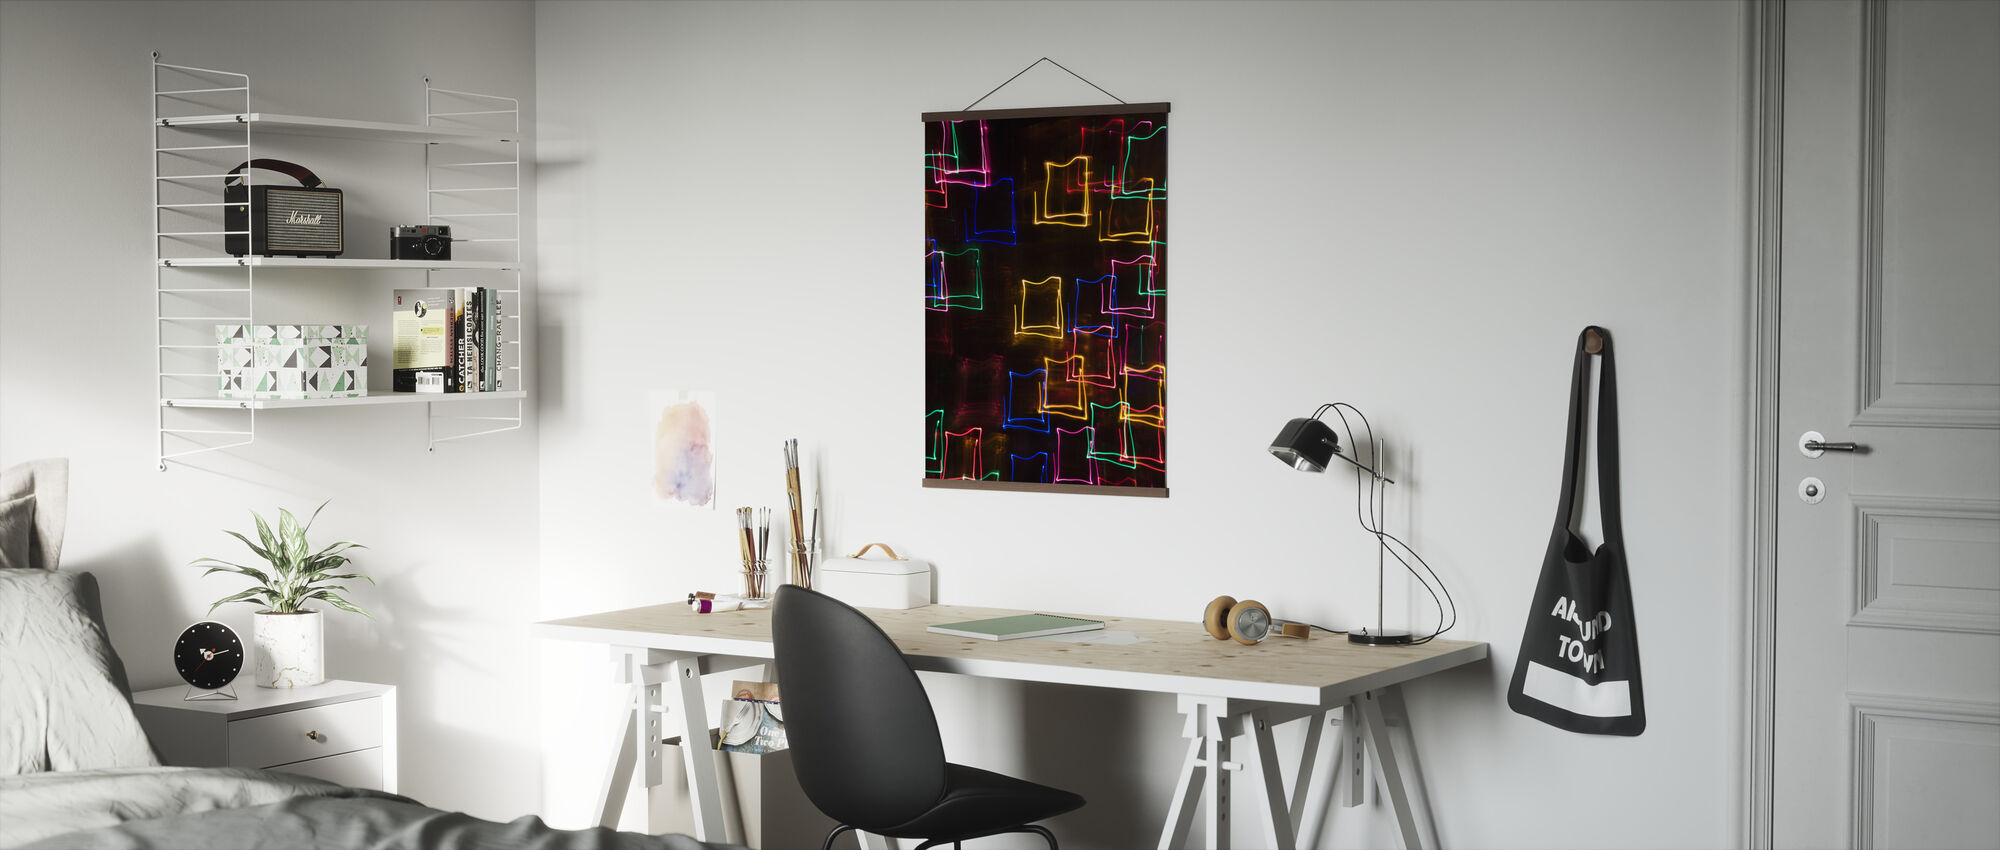 Motion Blur Light - Poster - Office